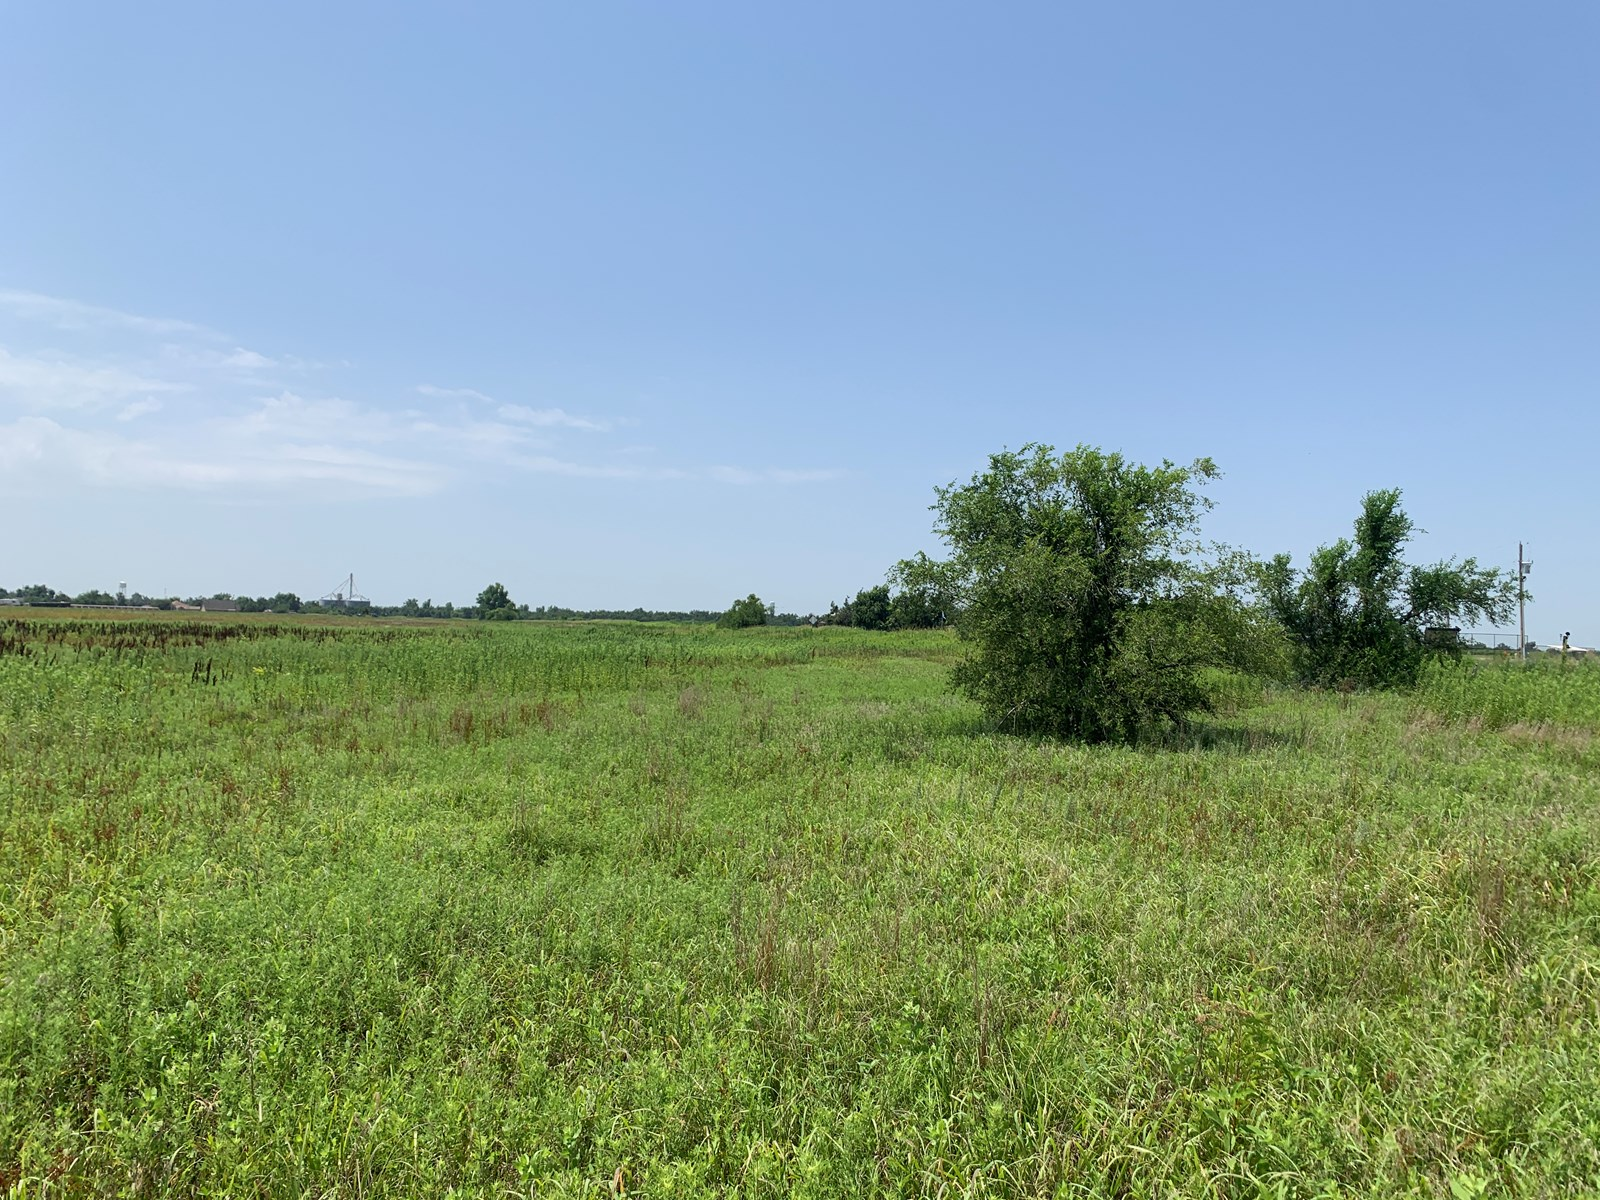 Crescent, OK - 34.5 Acres with Highway 74 Frontage